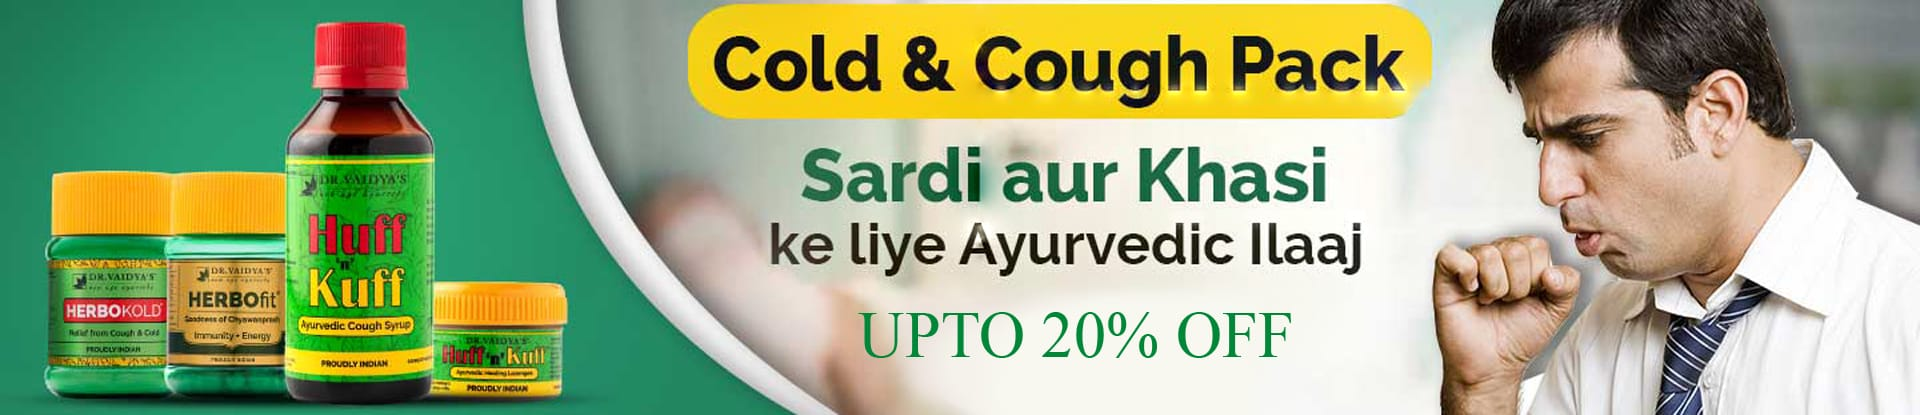 Buy Dr. Vaidya's Cough & Cold Pack at Best Price